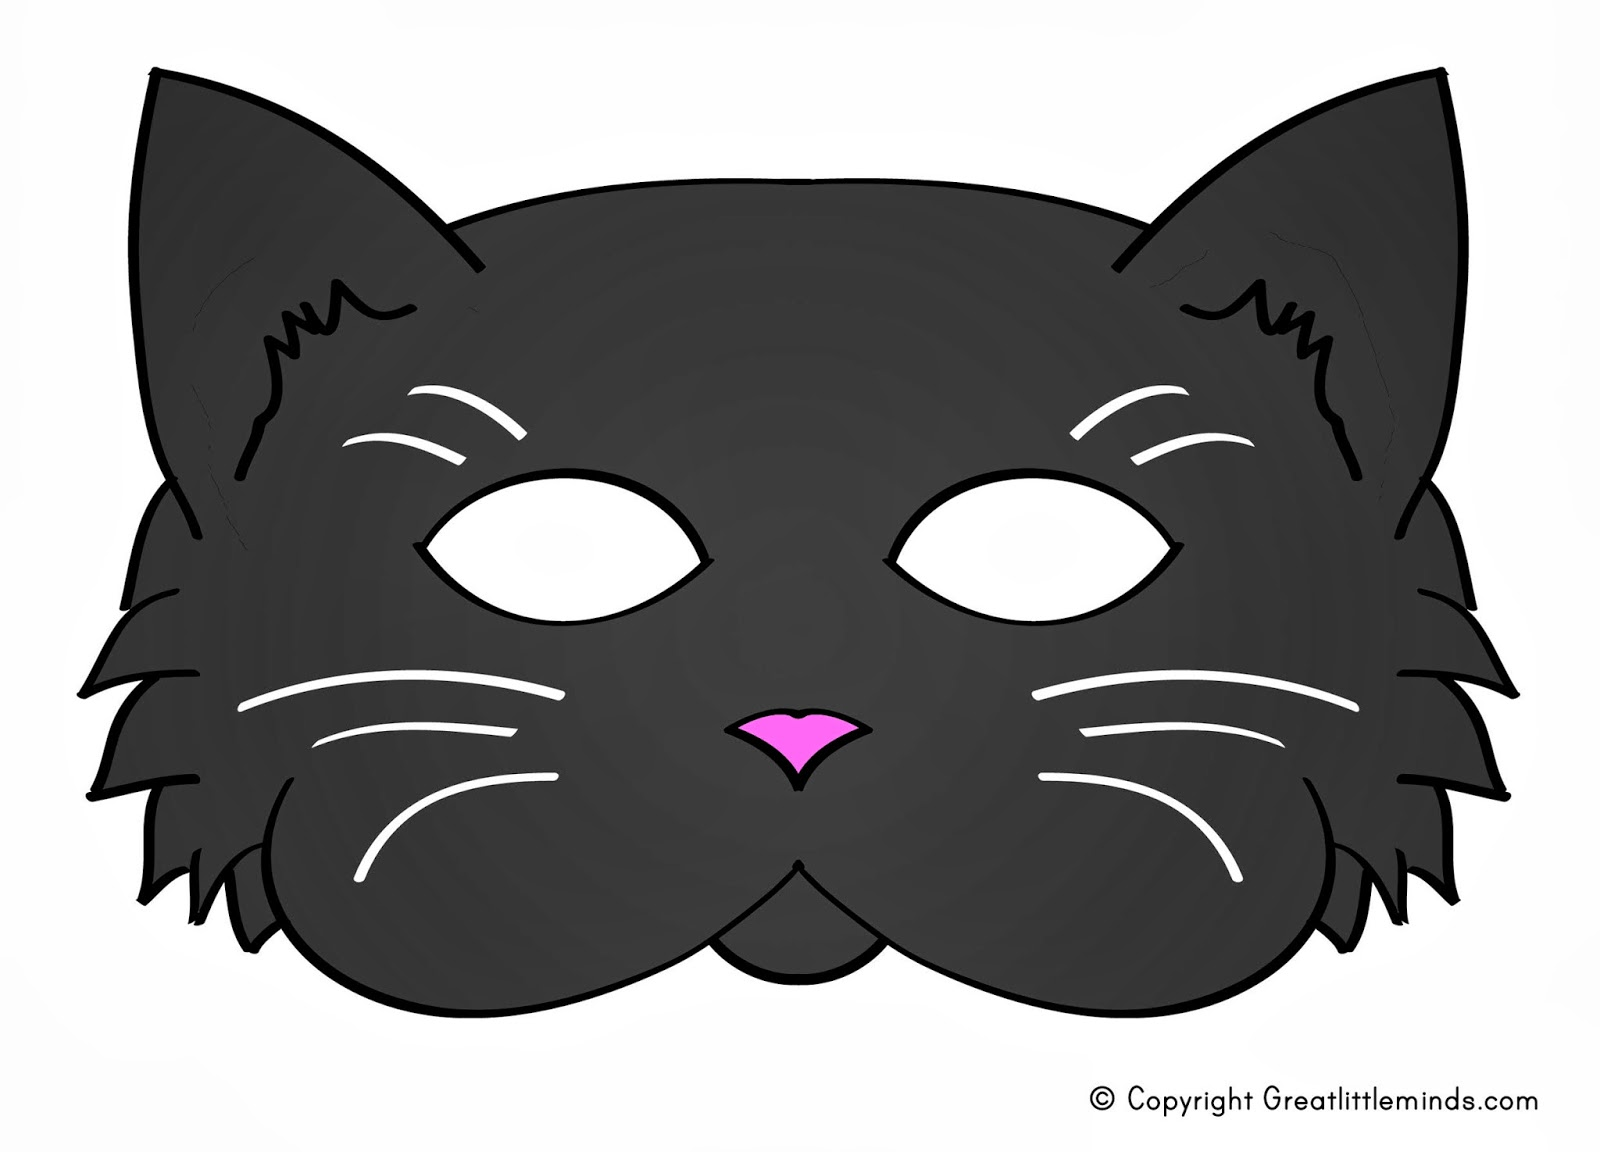 Current image for printable cat mask